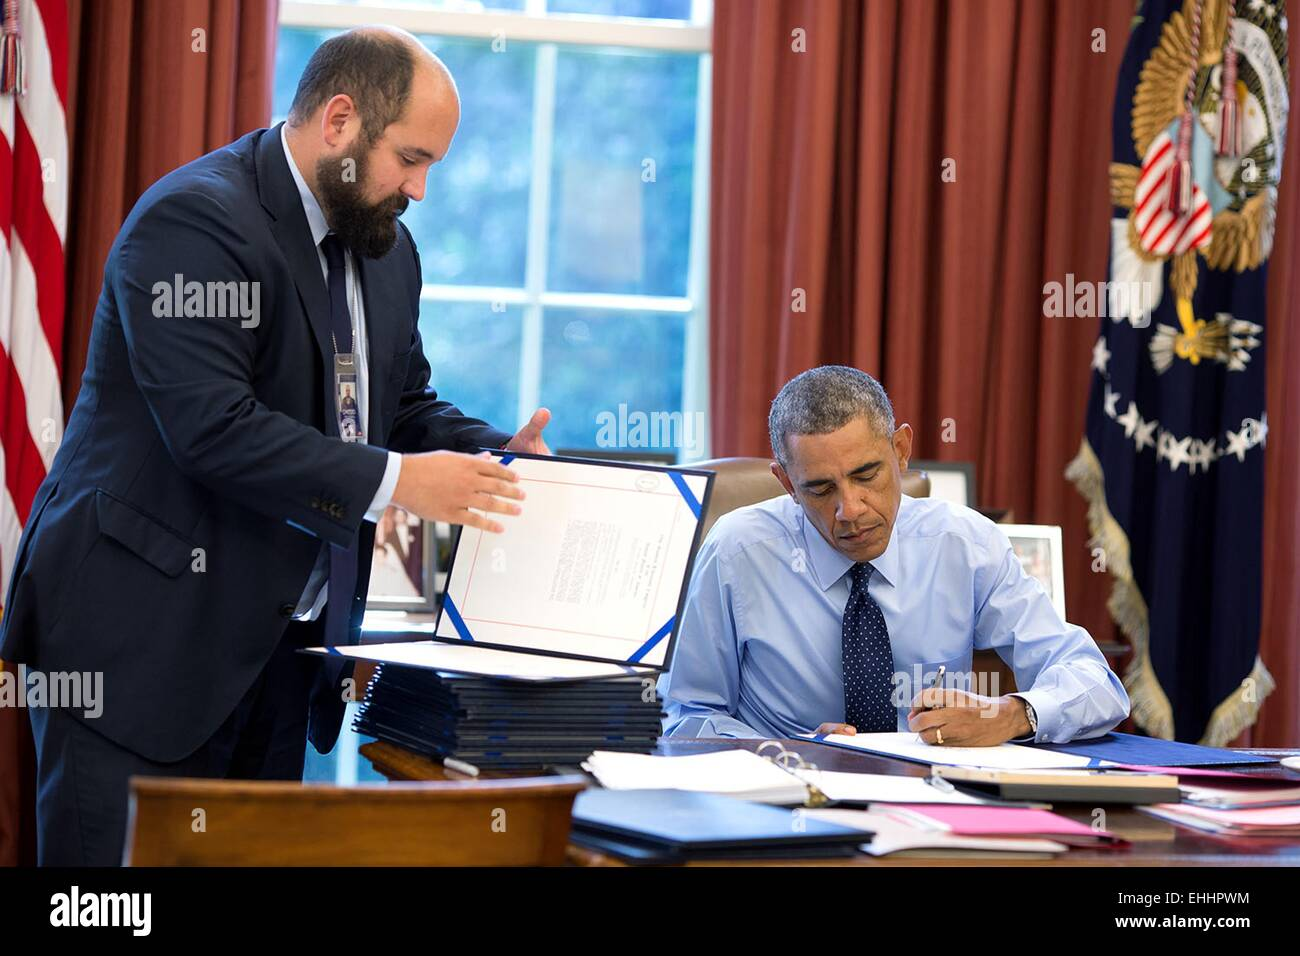 US President Barack Obama, assisted by Deputy Staff Secretary Ted Chiodo, signs bills in the Oval Office of the - Stock Image